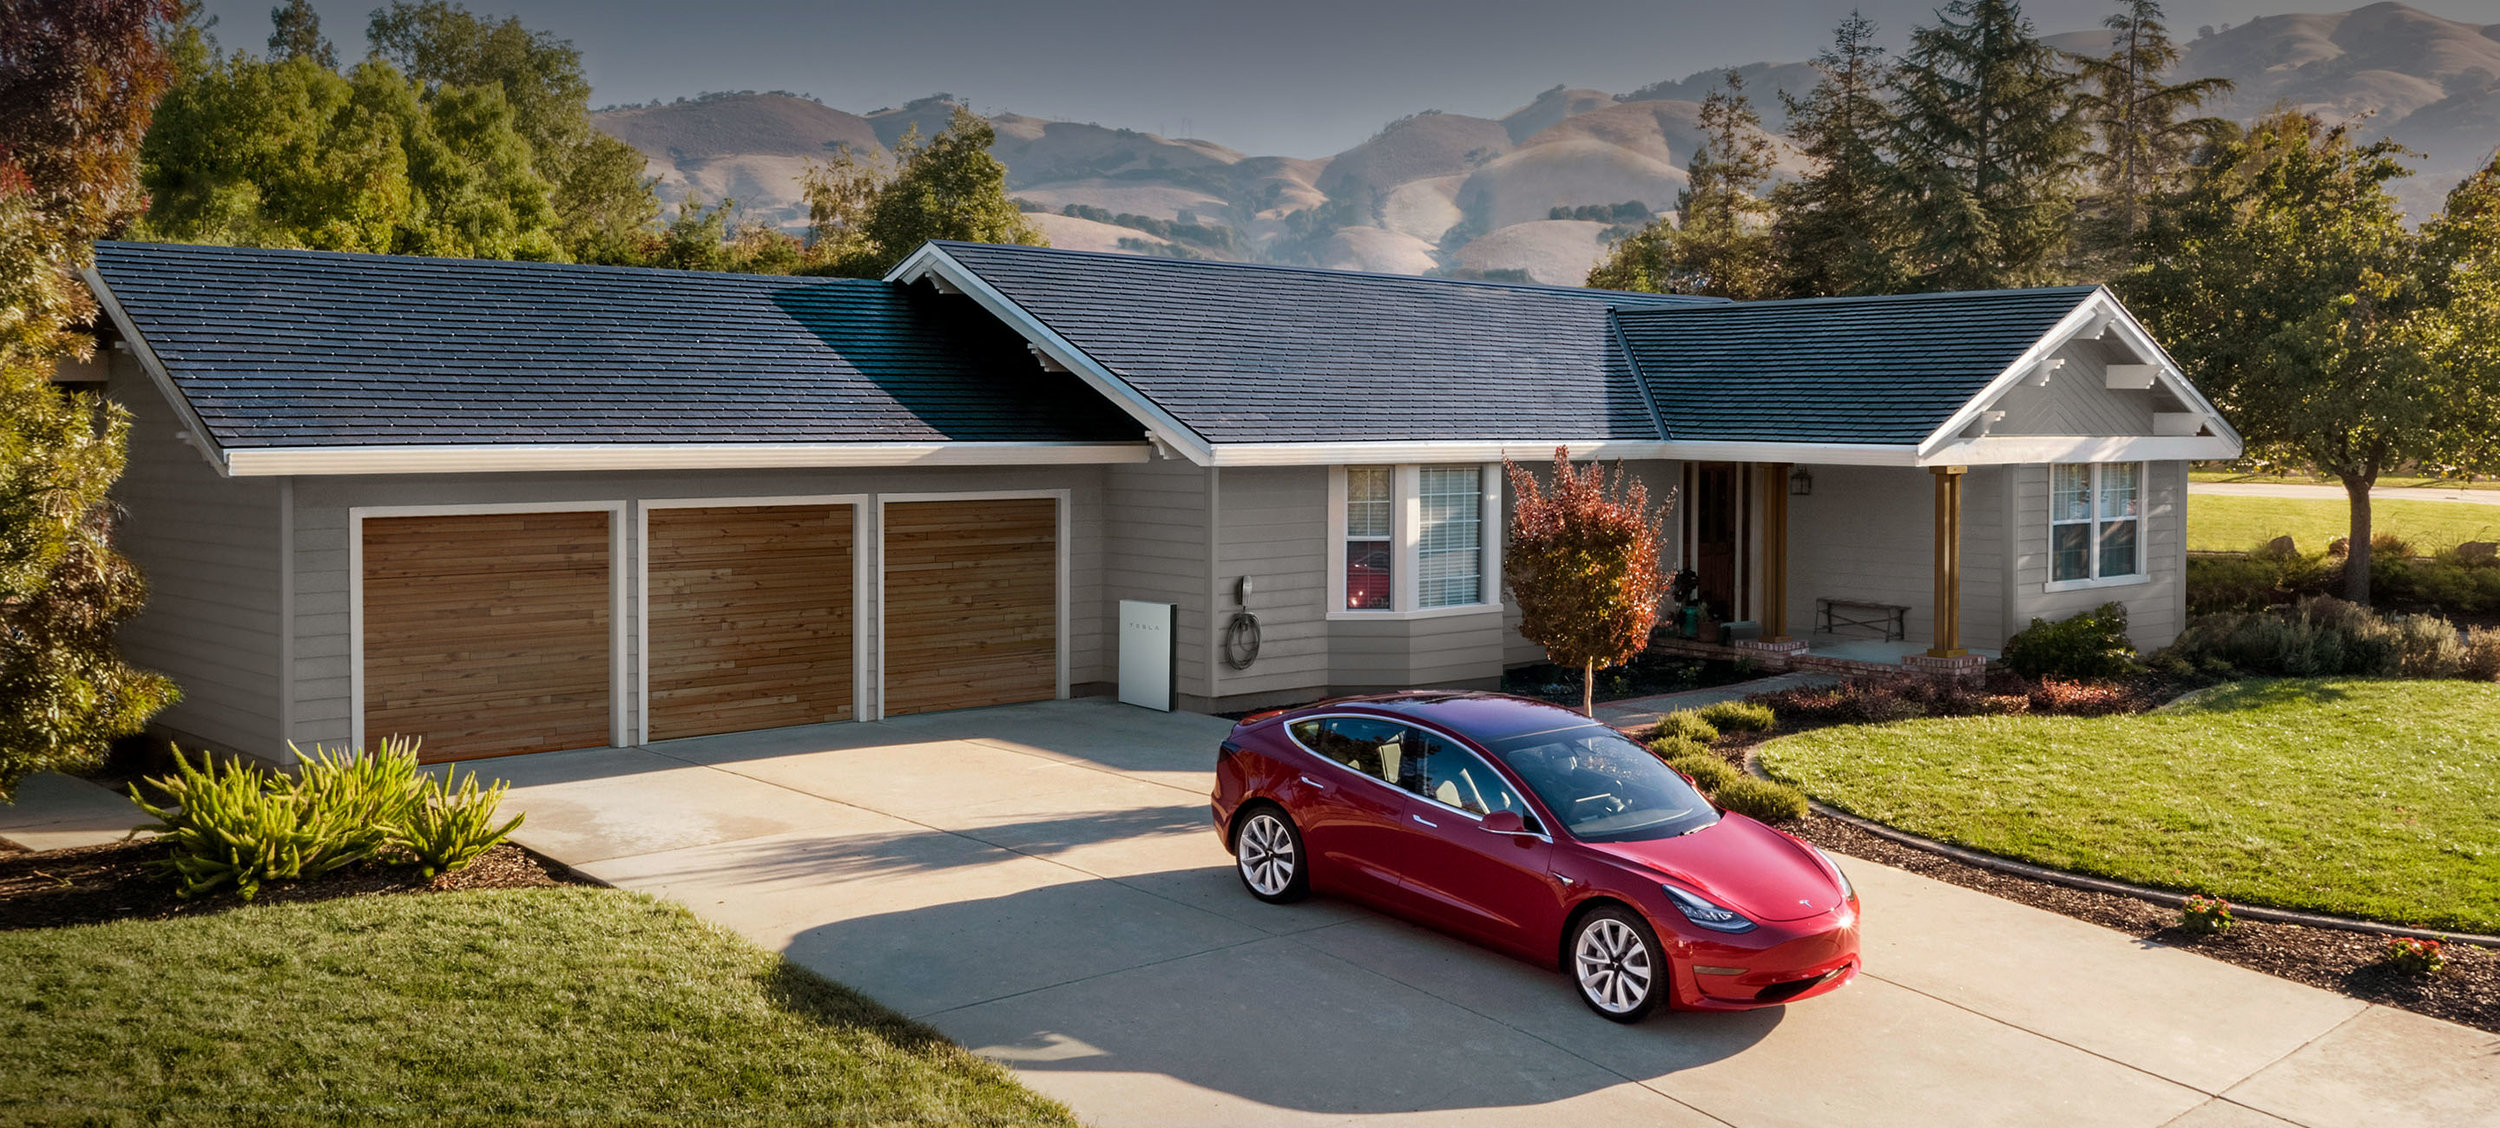 Images Source:  Tesla Roof